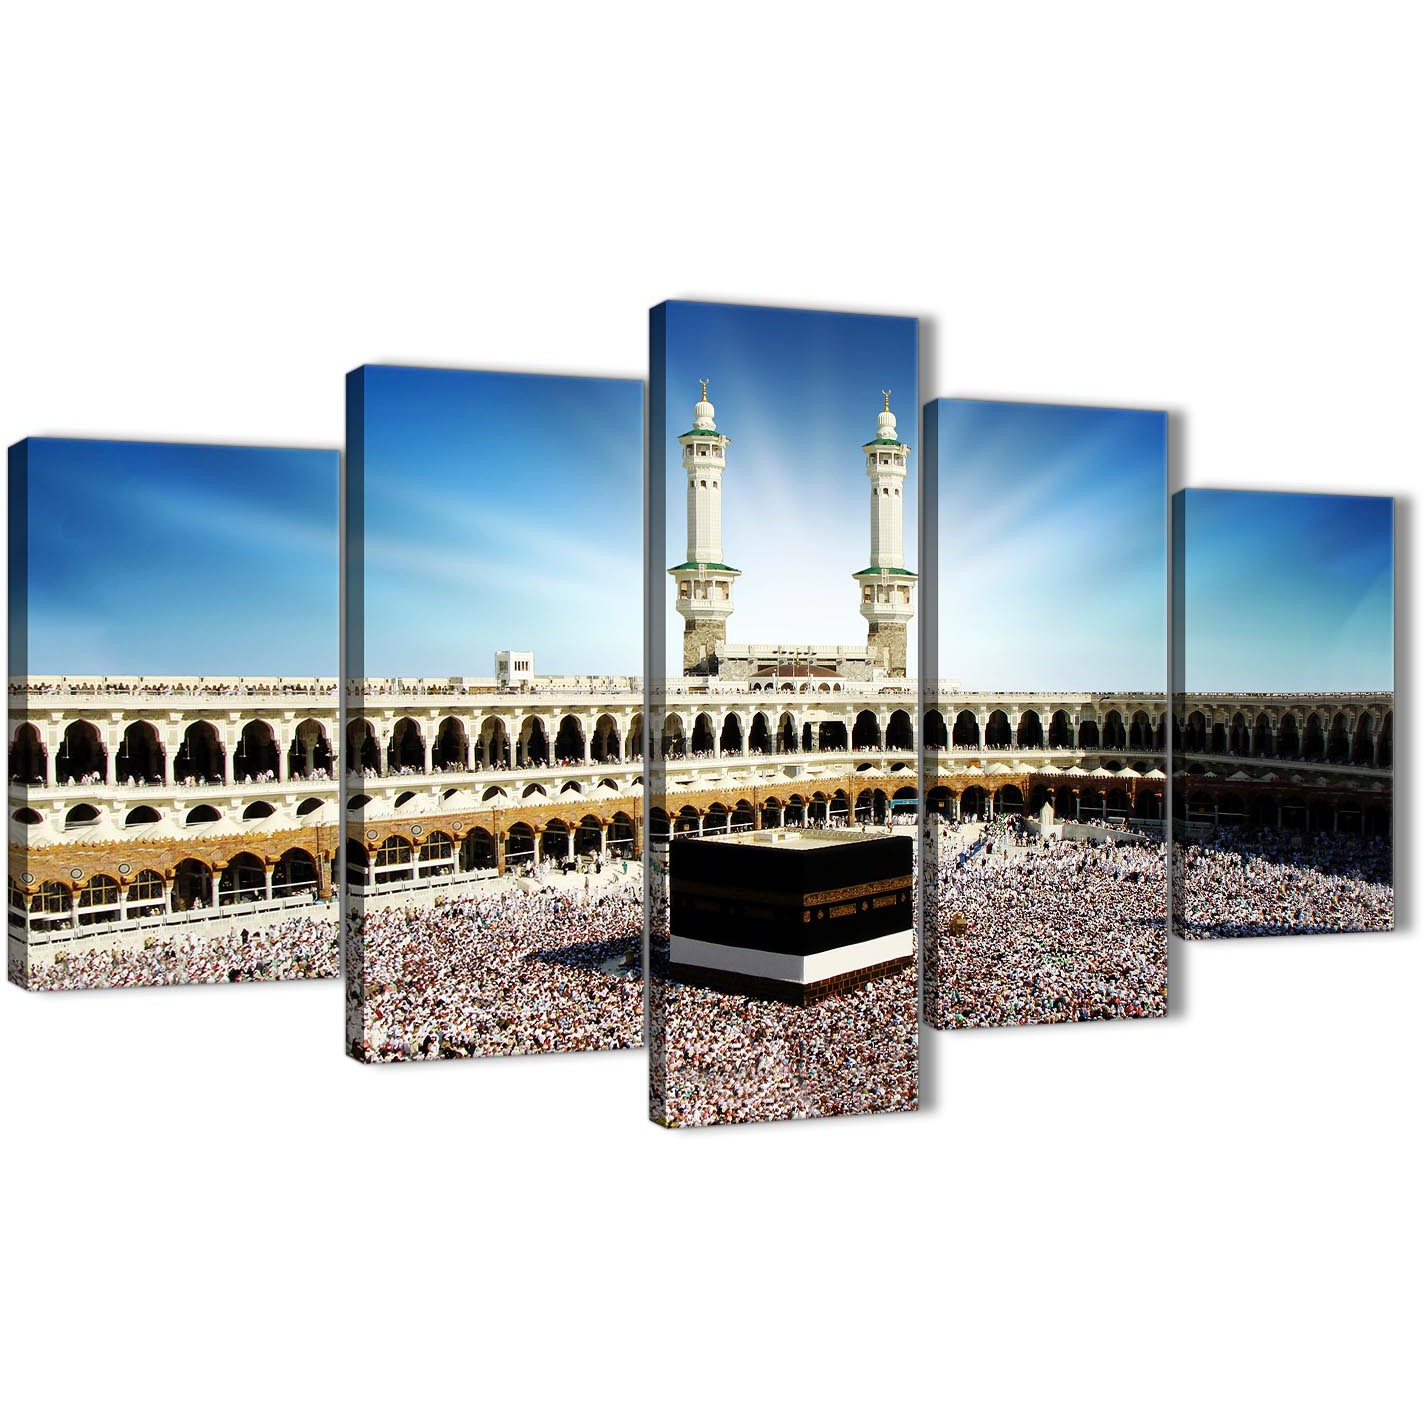 Oversized 5 Piece Canvas Wall Art Pictures - Islamic Canvas - Hajj Pilgrimage Kaaba - 5191 Display Gallery Item 1 ...  sc 1 st  Wallfillers & Hajj Pilgrimage Kaaba - 5 Piece Canvas Wall Art Pictures - Islamic ...